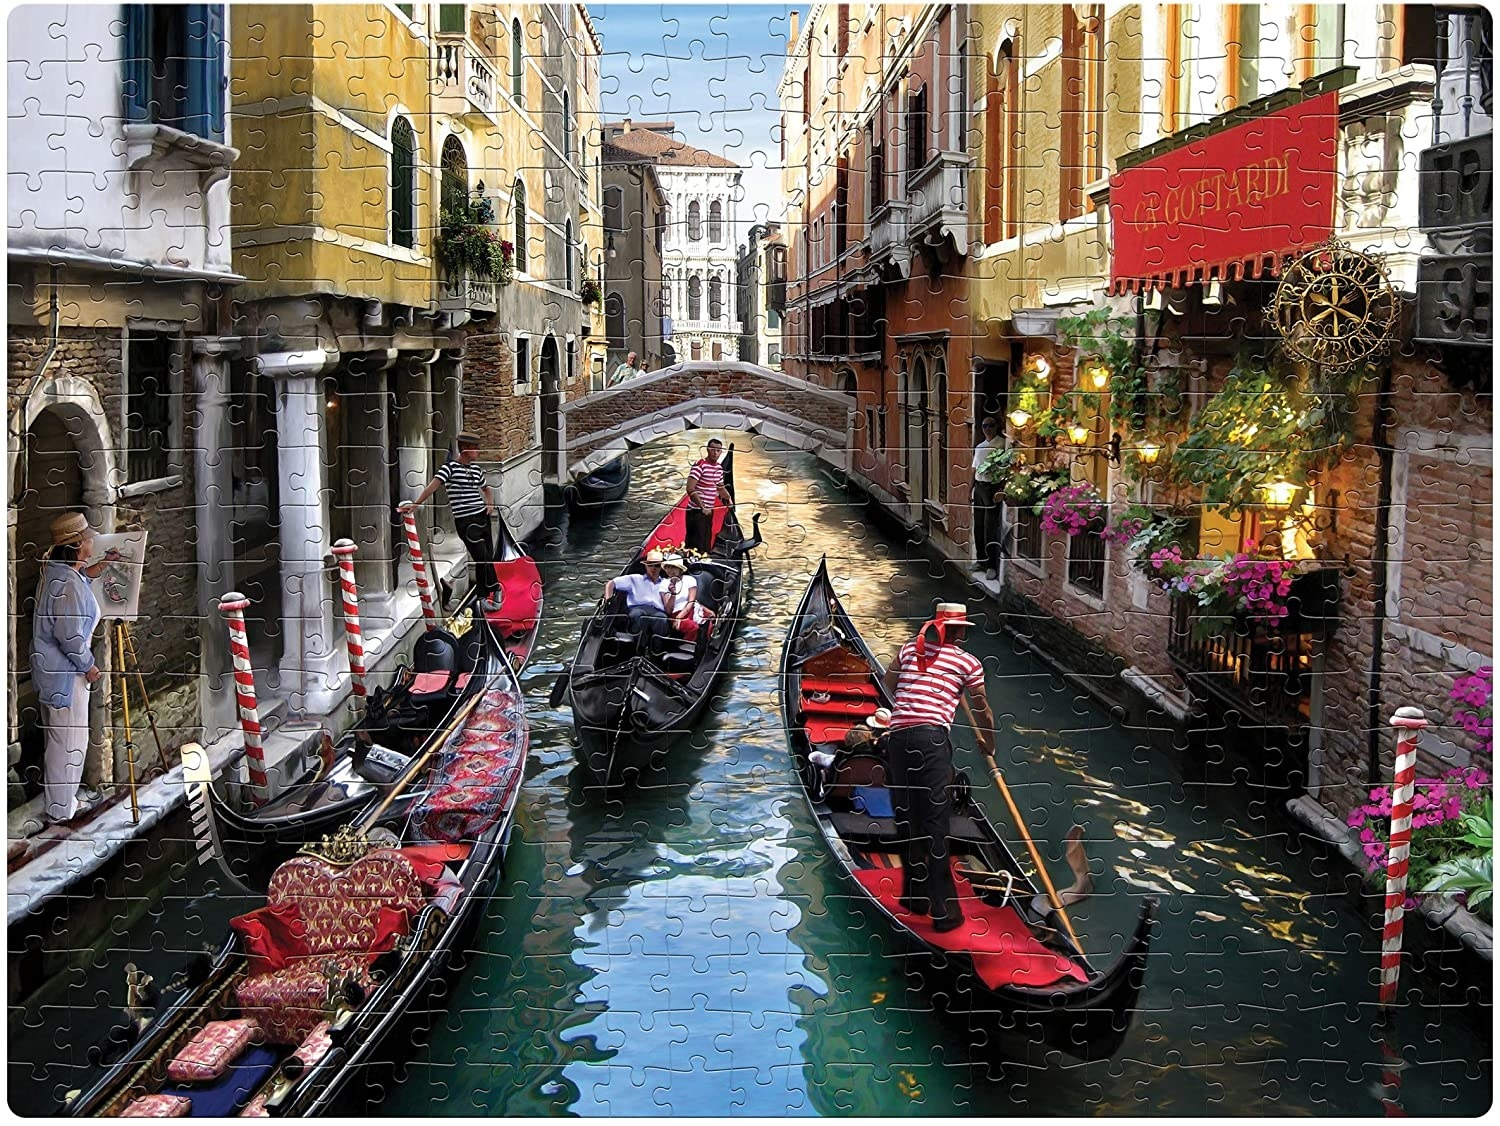 A puzzle with an image of Venice